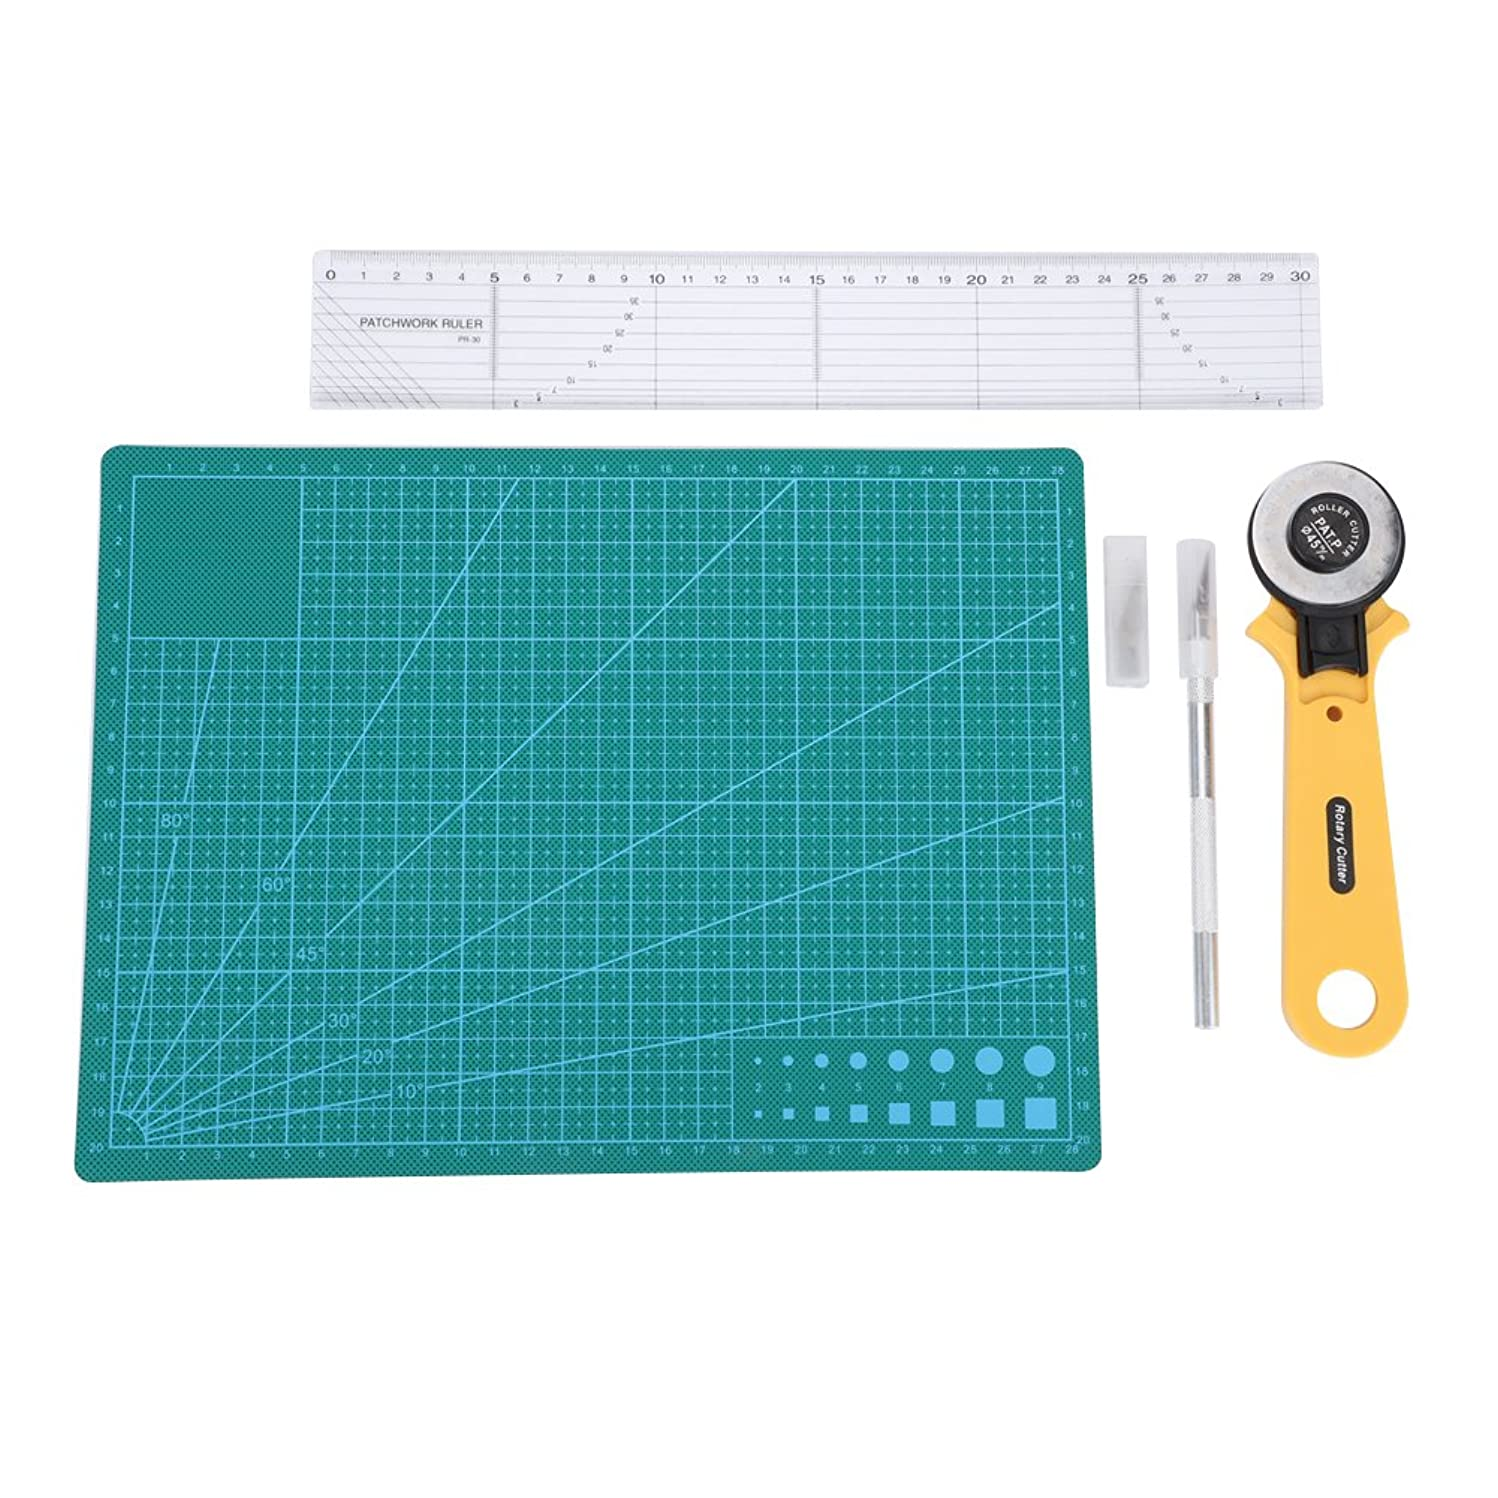 5Pcs/Set Sewing Handmade Crafting Tool Kit Paper Fabric Leather Cutting Tools Set